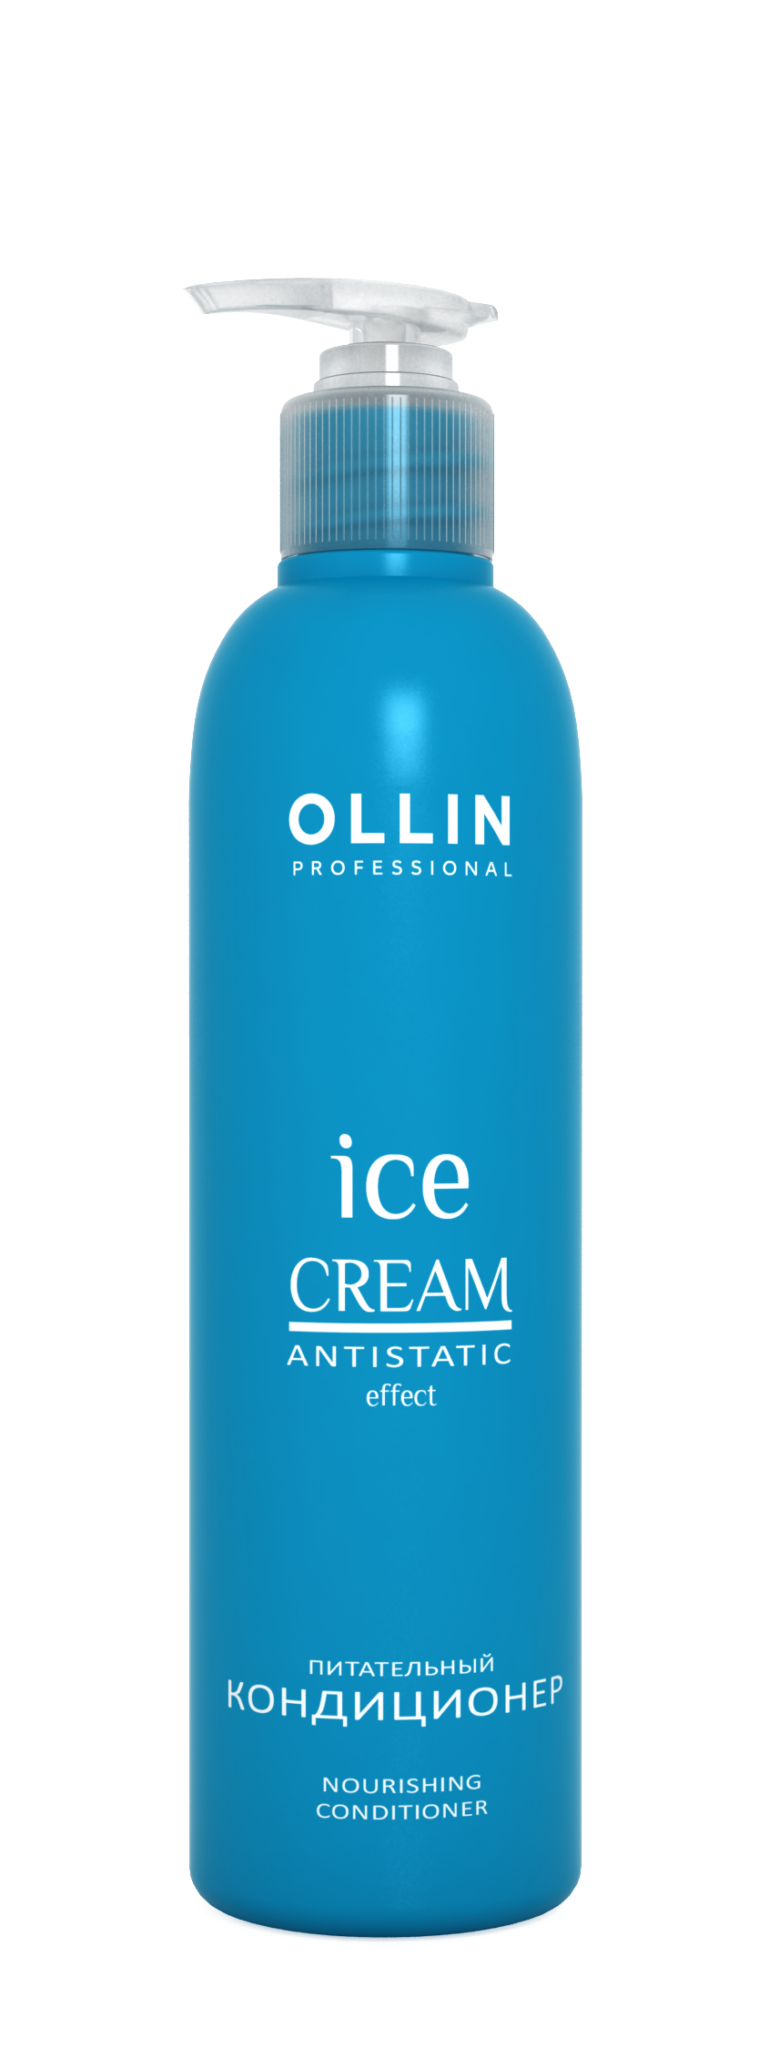 OLLIN PROFESSIONAL ICE CREAM Питательный Кондиционер Nourishing Conditioner, 250 мл nourishing conditioner